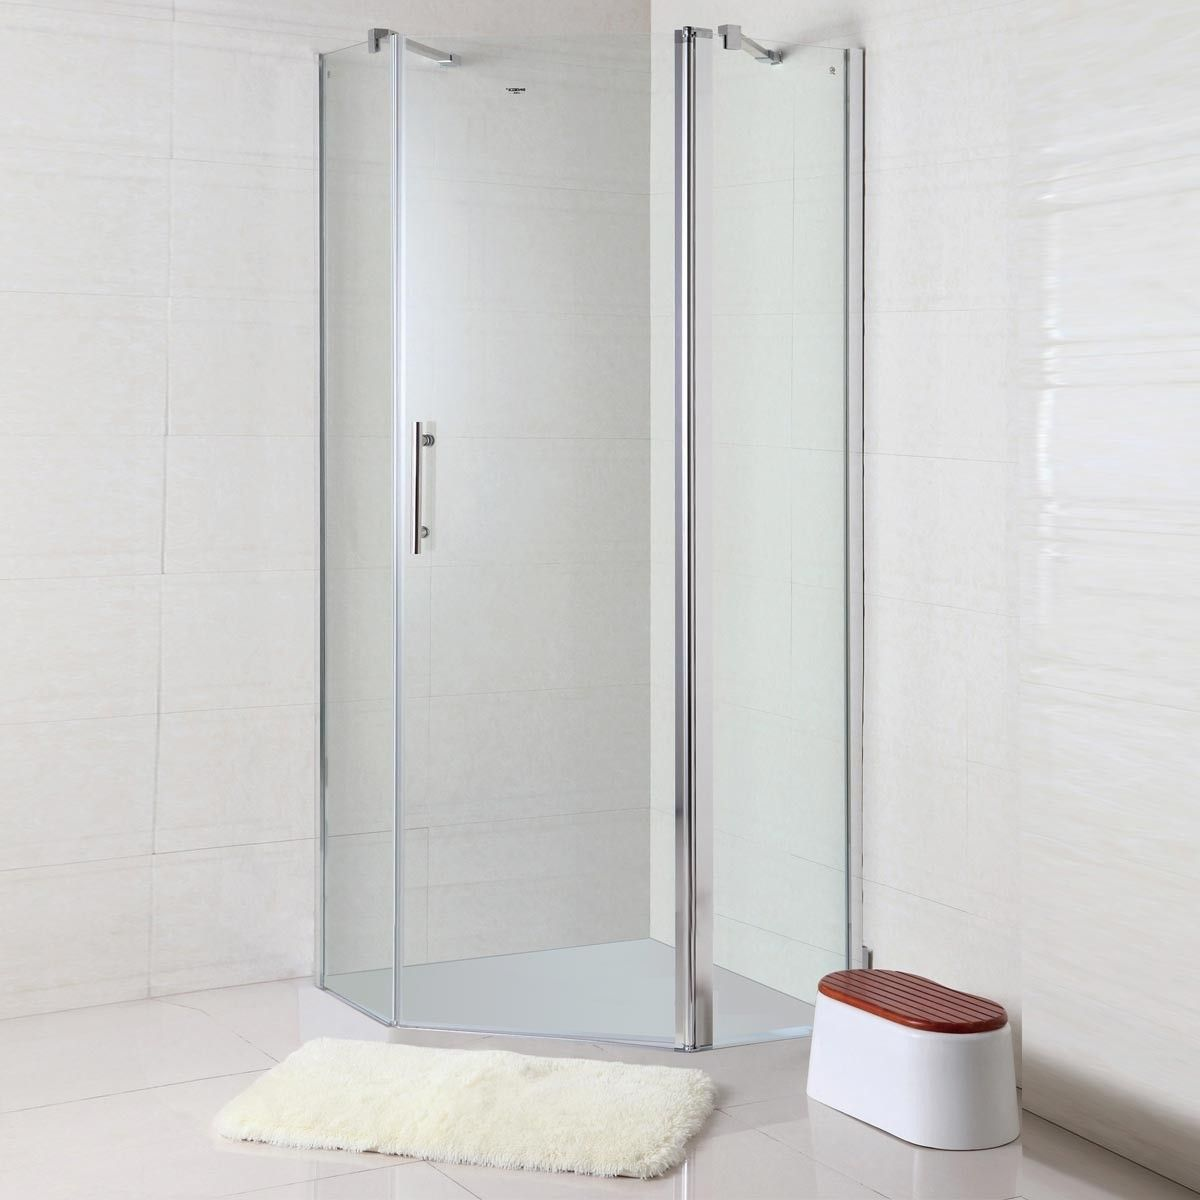 36 X 36 In 90 X 90 Cm Clear Tempered Glass Corner Shower Stall